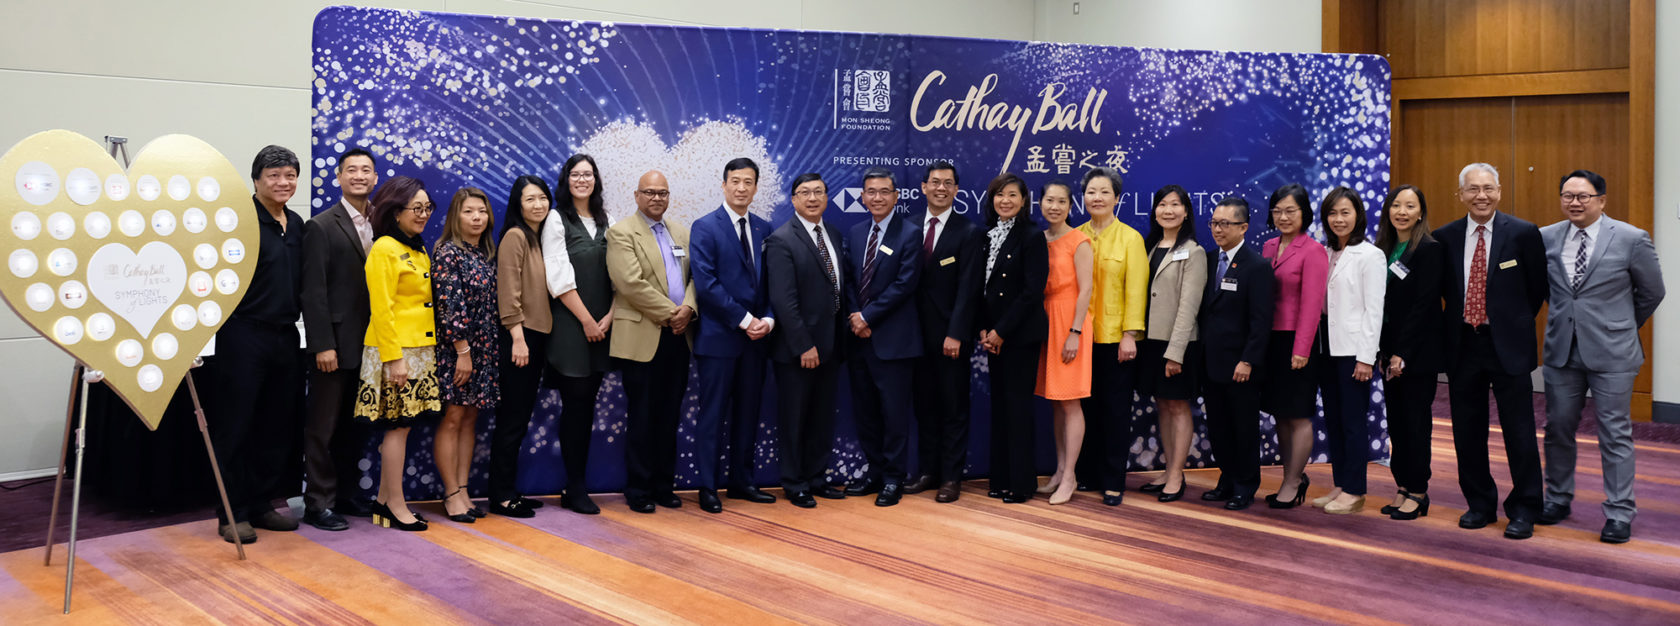 Cathay Ball 2019 Press Conference with Sponsors